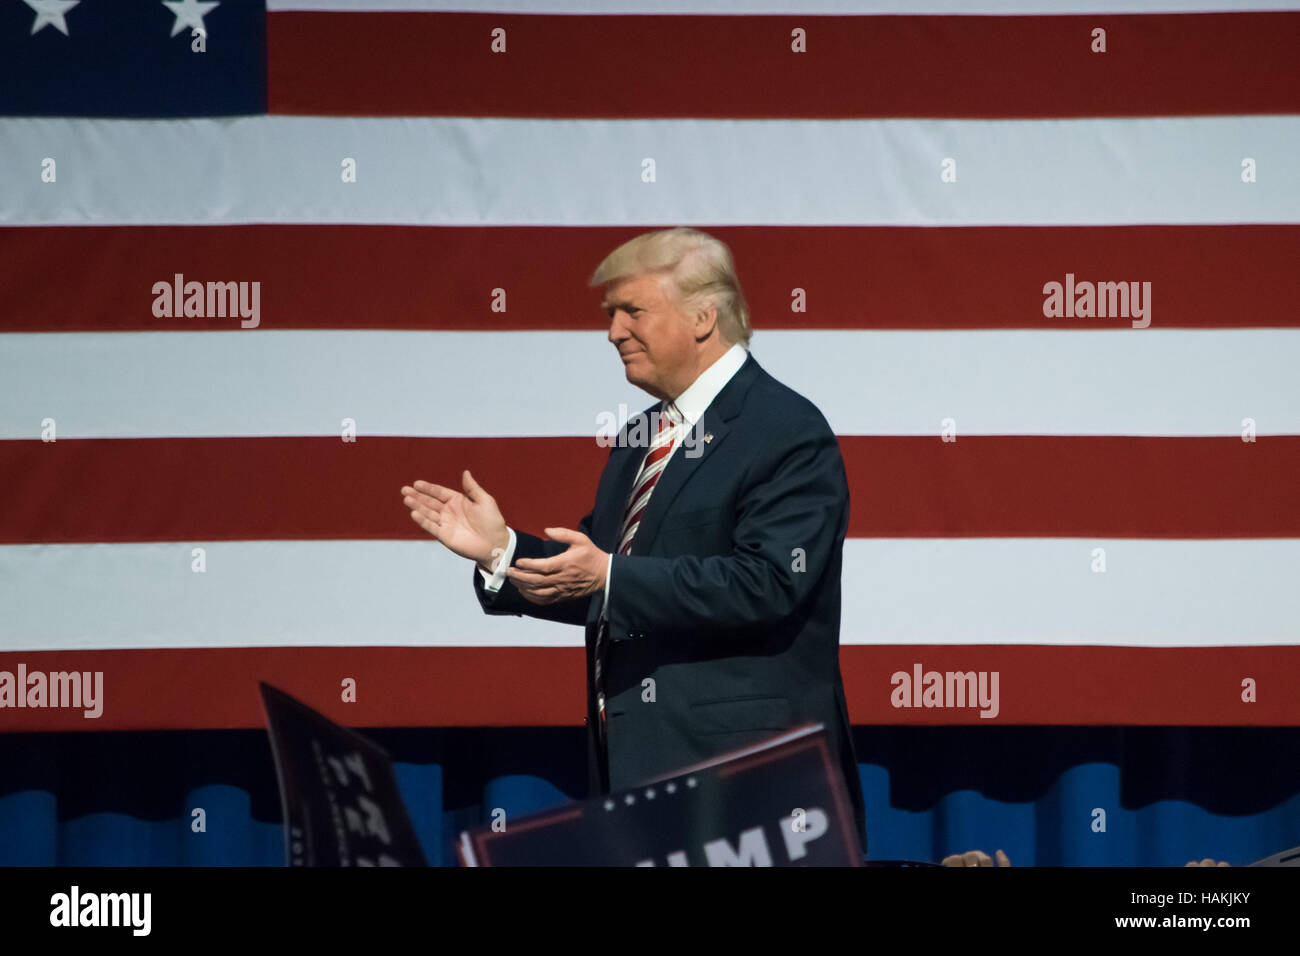 Republican Presidential Nominee Donald Trump walking on stage applauding the crowd near the American Flag. - Stock Image